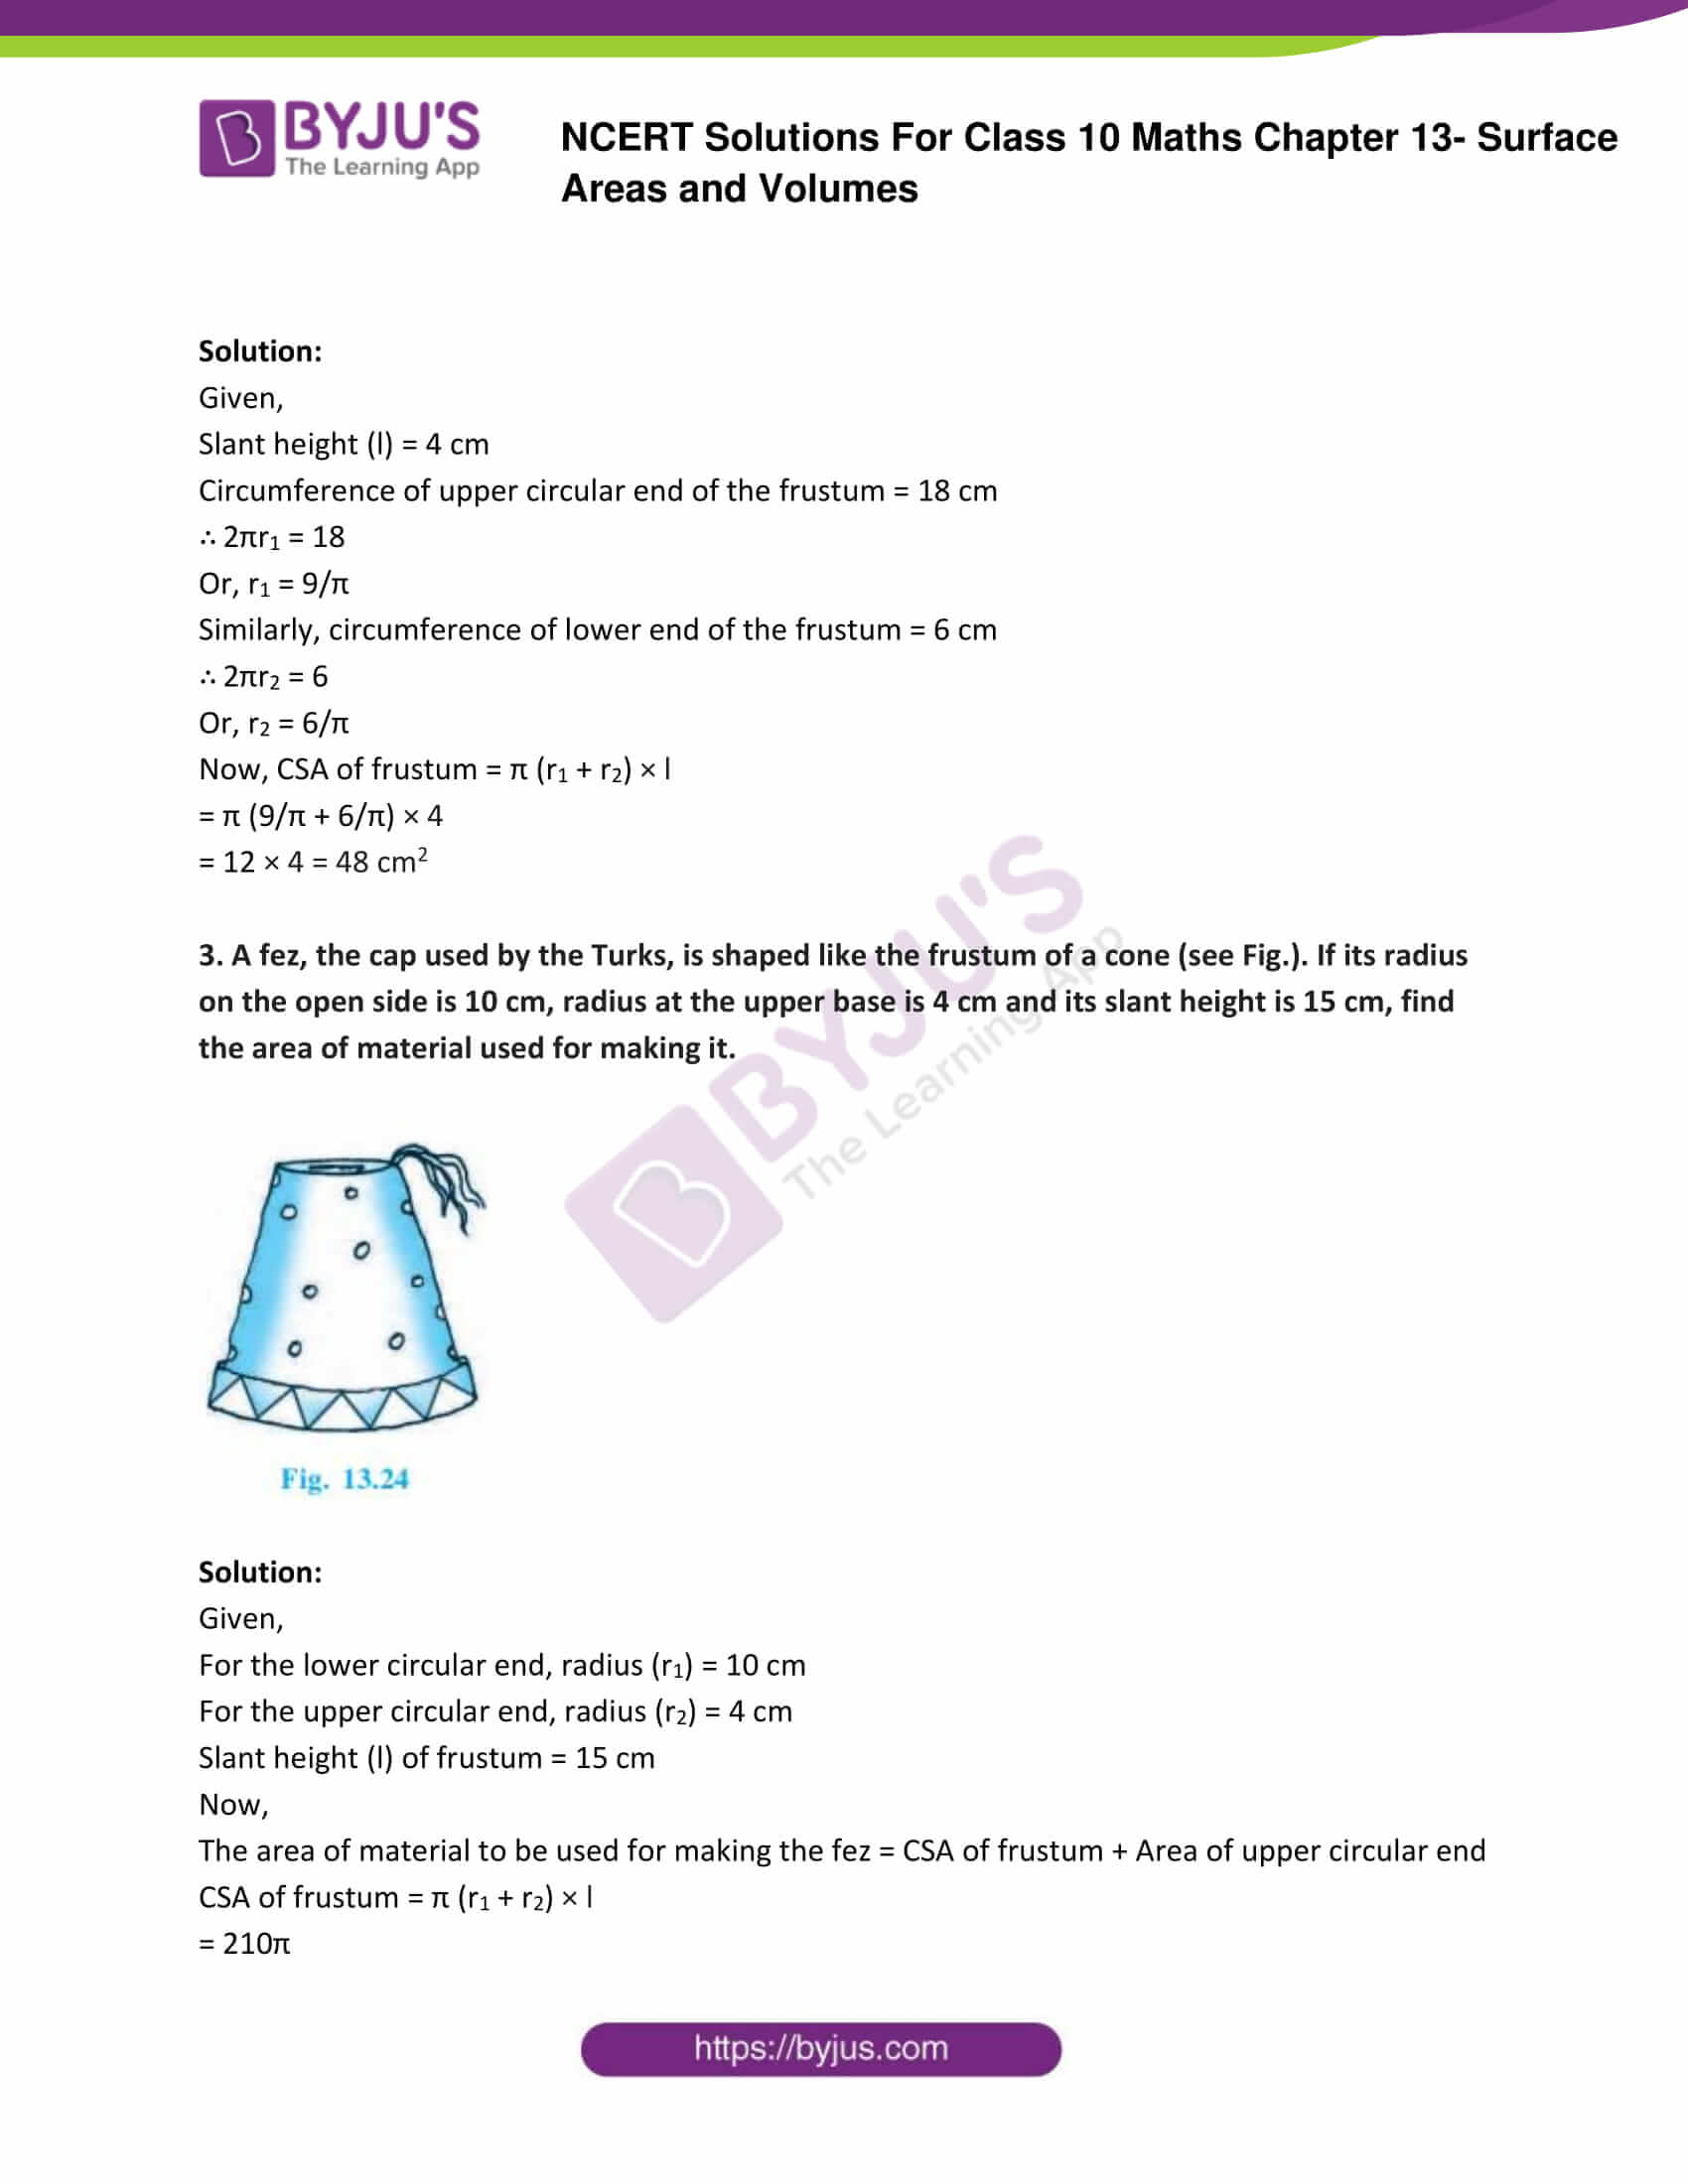 NCERT Solutions Class 10 Maths Chapter 13 Surface Areas and Volumes Part 21